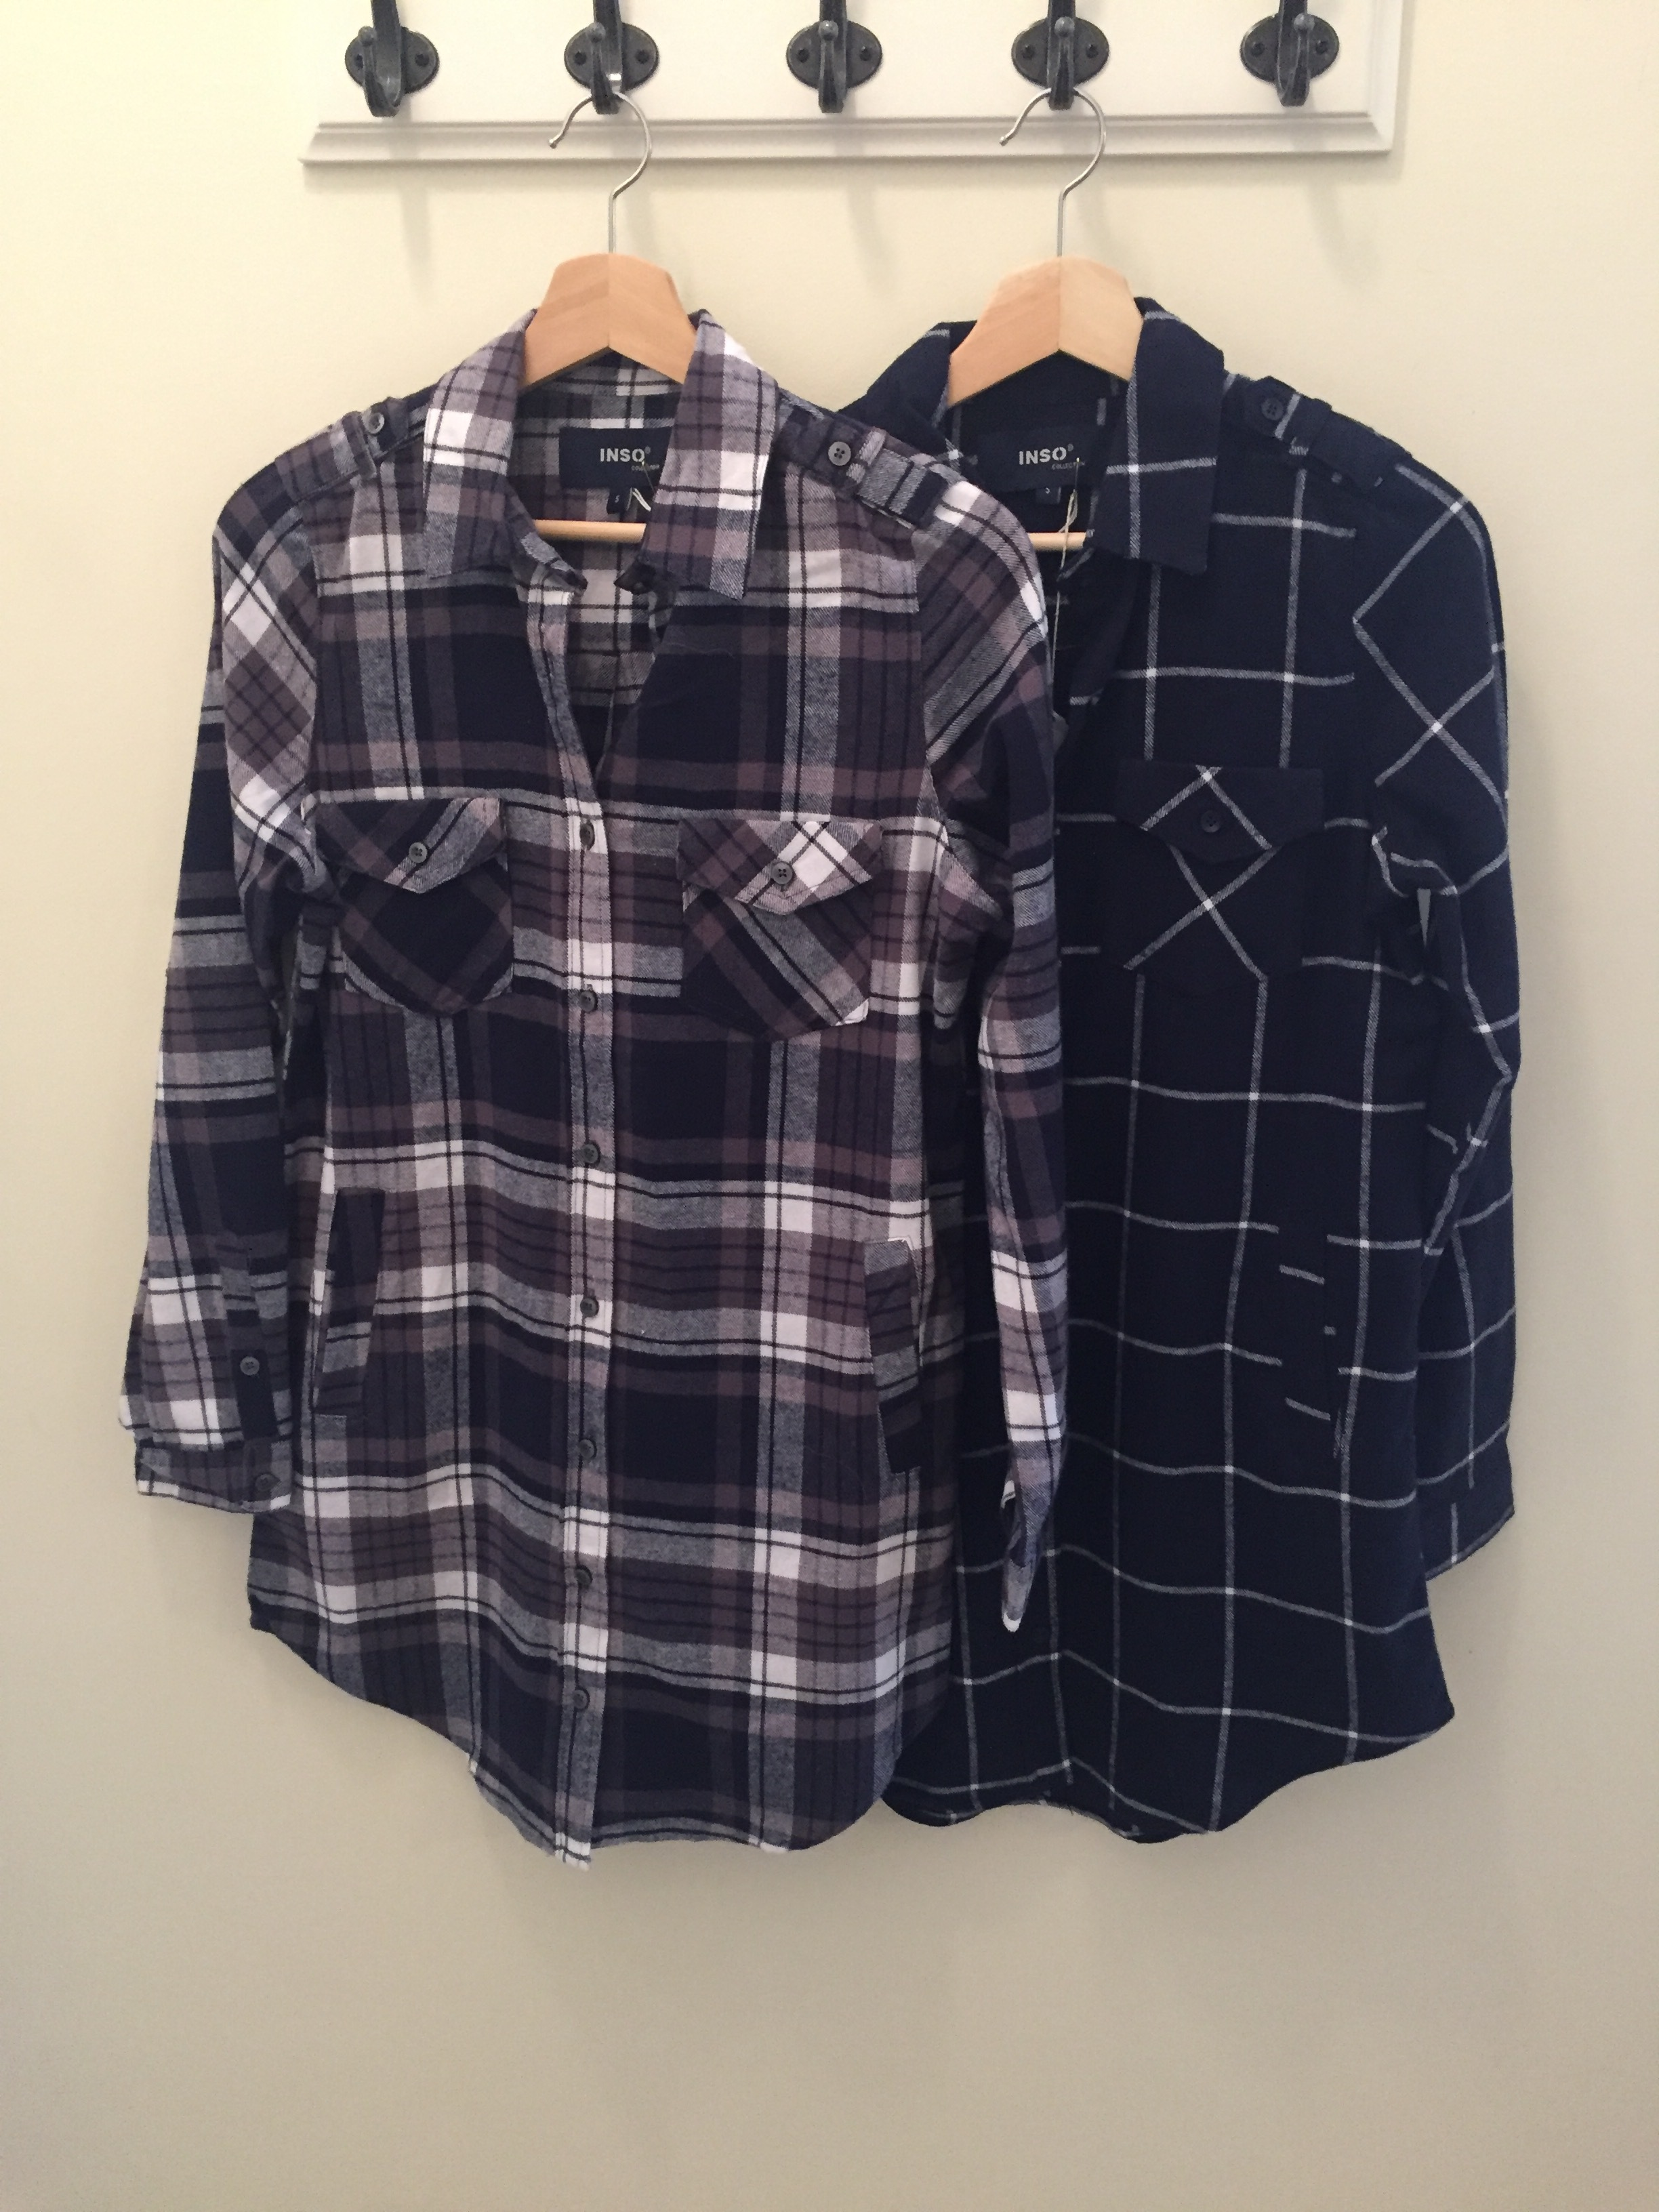 Tunic Flannel, with Pockets! $32